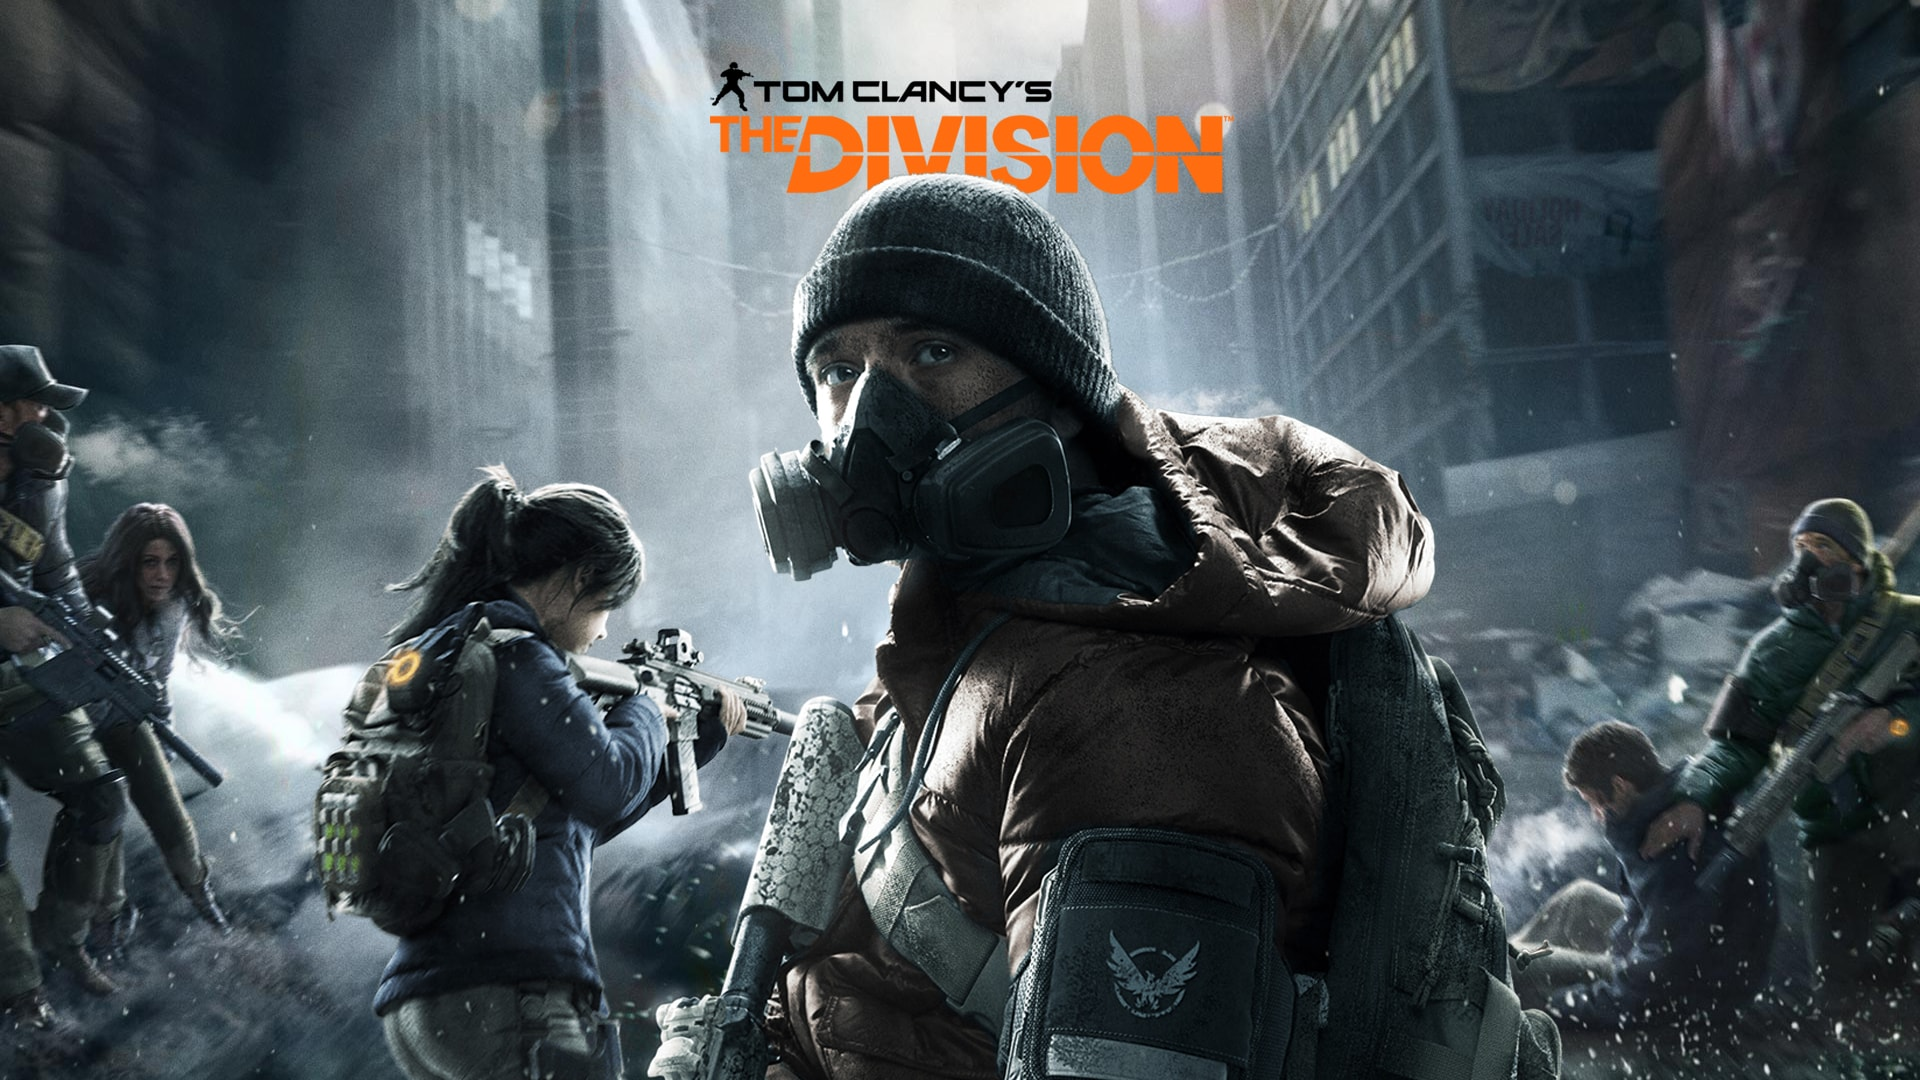 Tom Clancys The Division Hd Wallpapers 7wallpapersnet